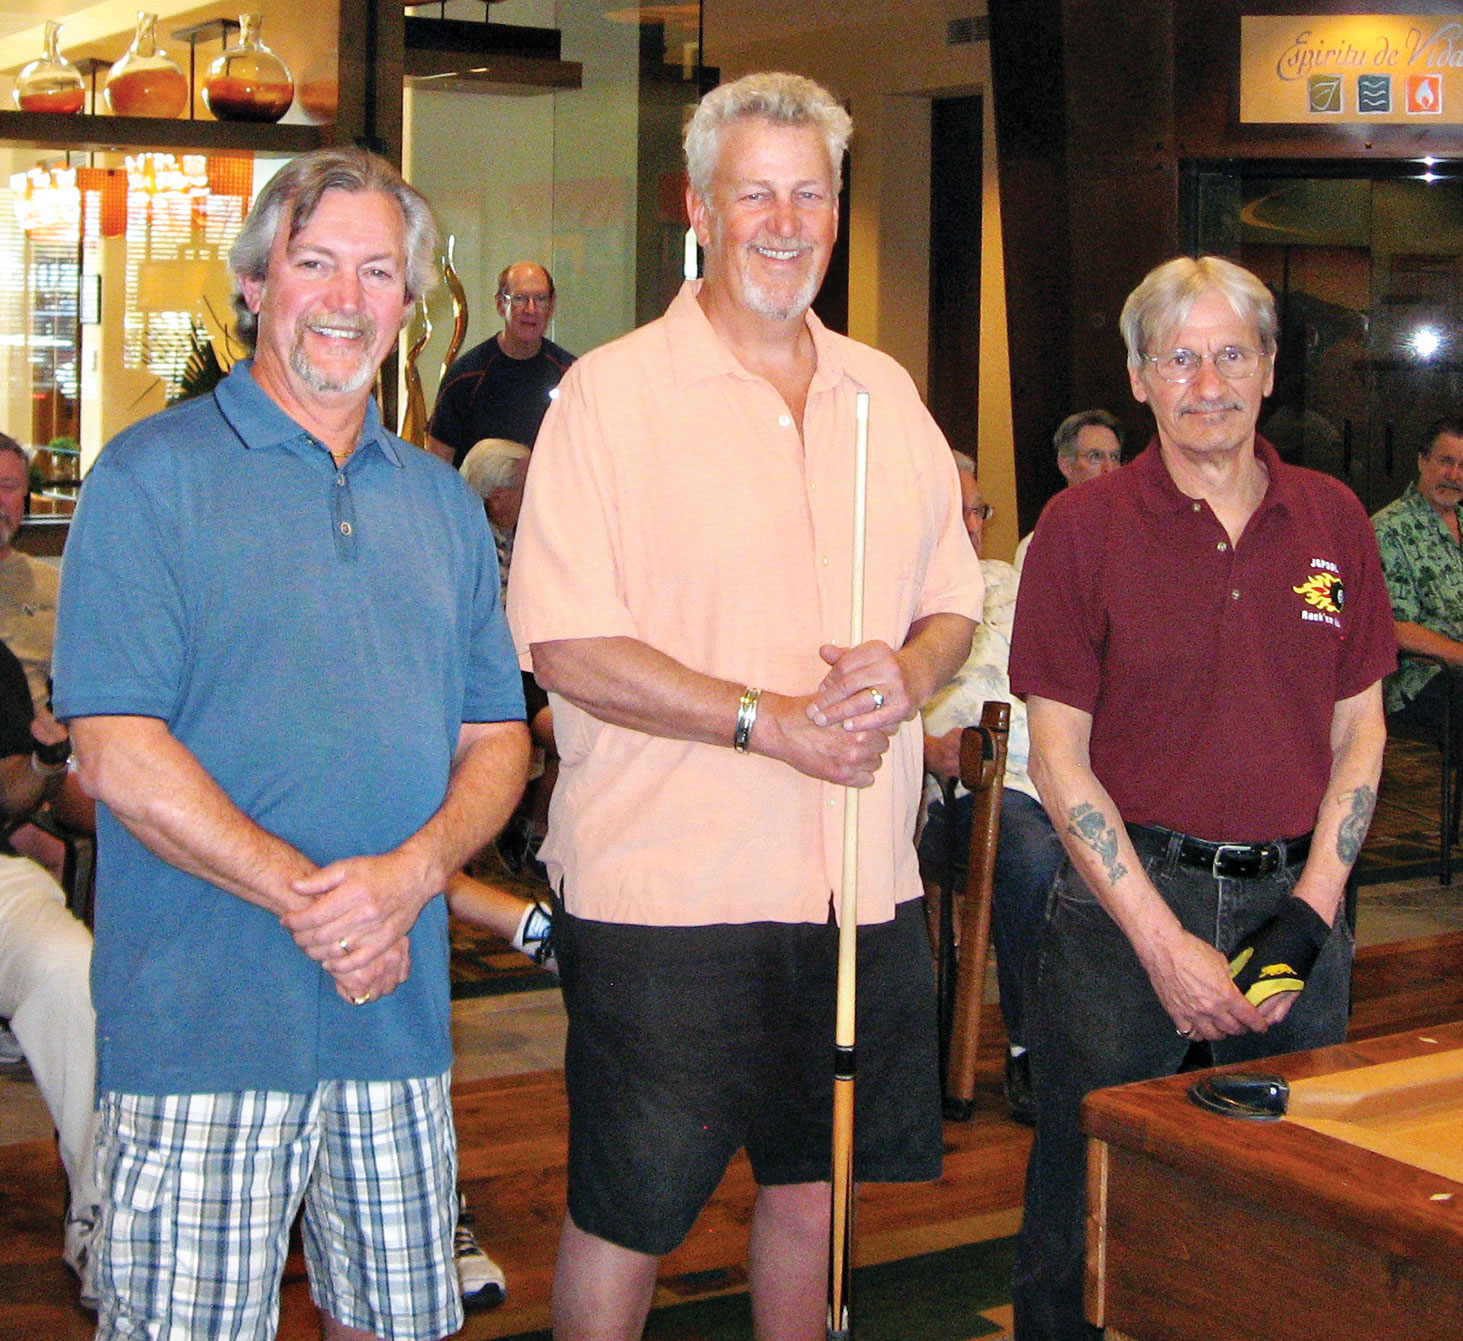 Dominic Borland (TD), Jay Clary, winner of the cue/case from Linsay's Quality Cues, and Joe Giammarino (TD)